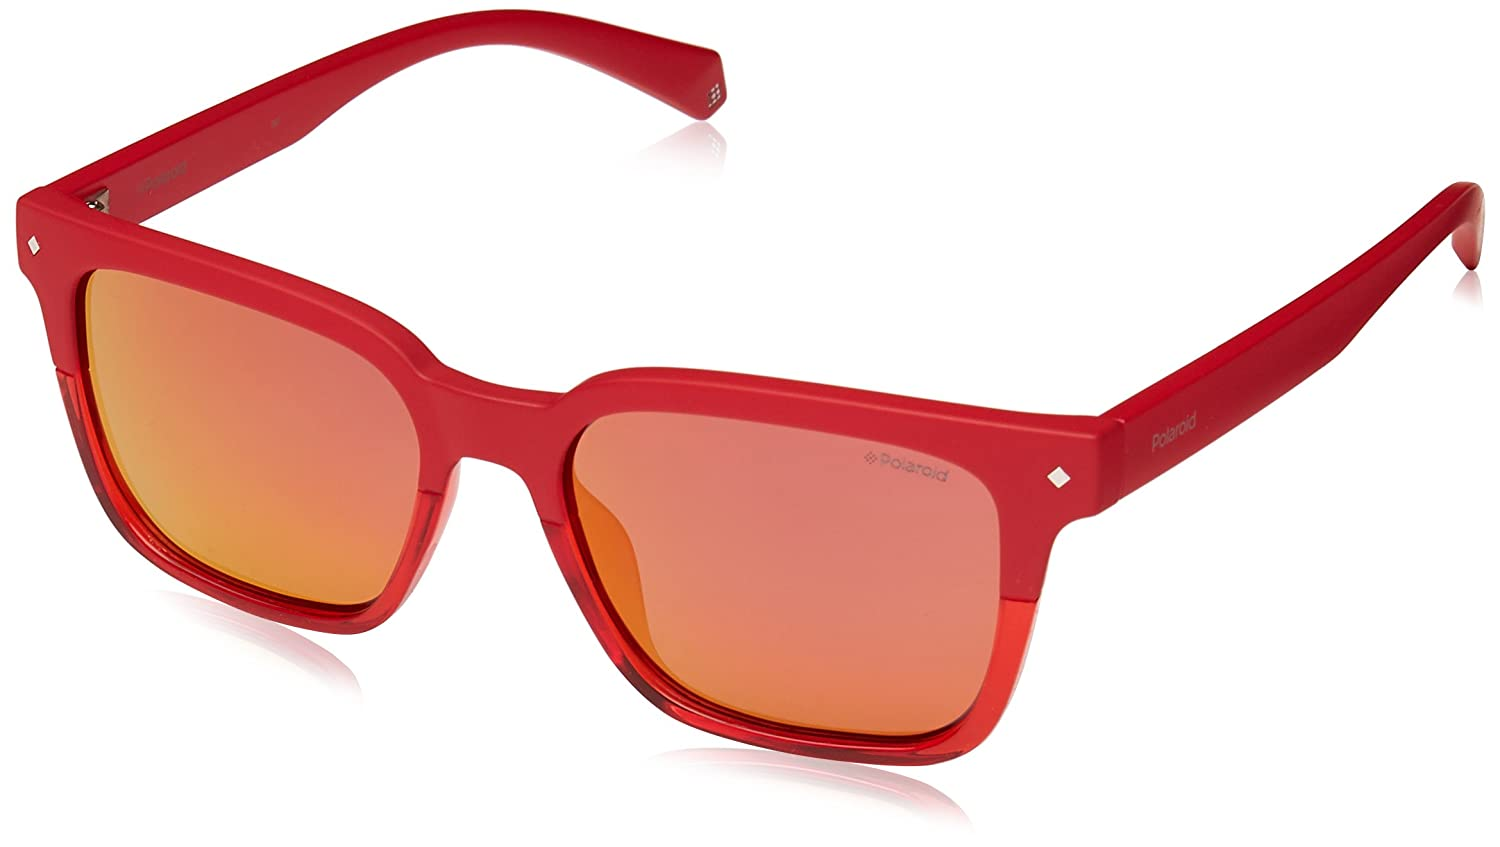 Amazon.com: POLAROID SUNGLASSES PLD 6044 S C9A OZ RED ...